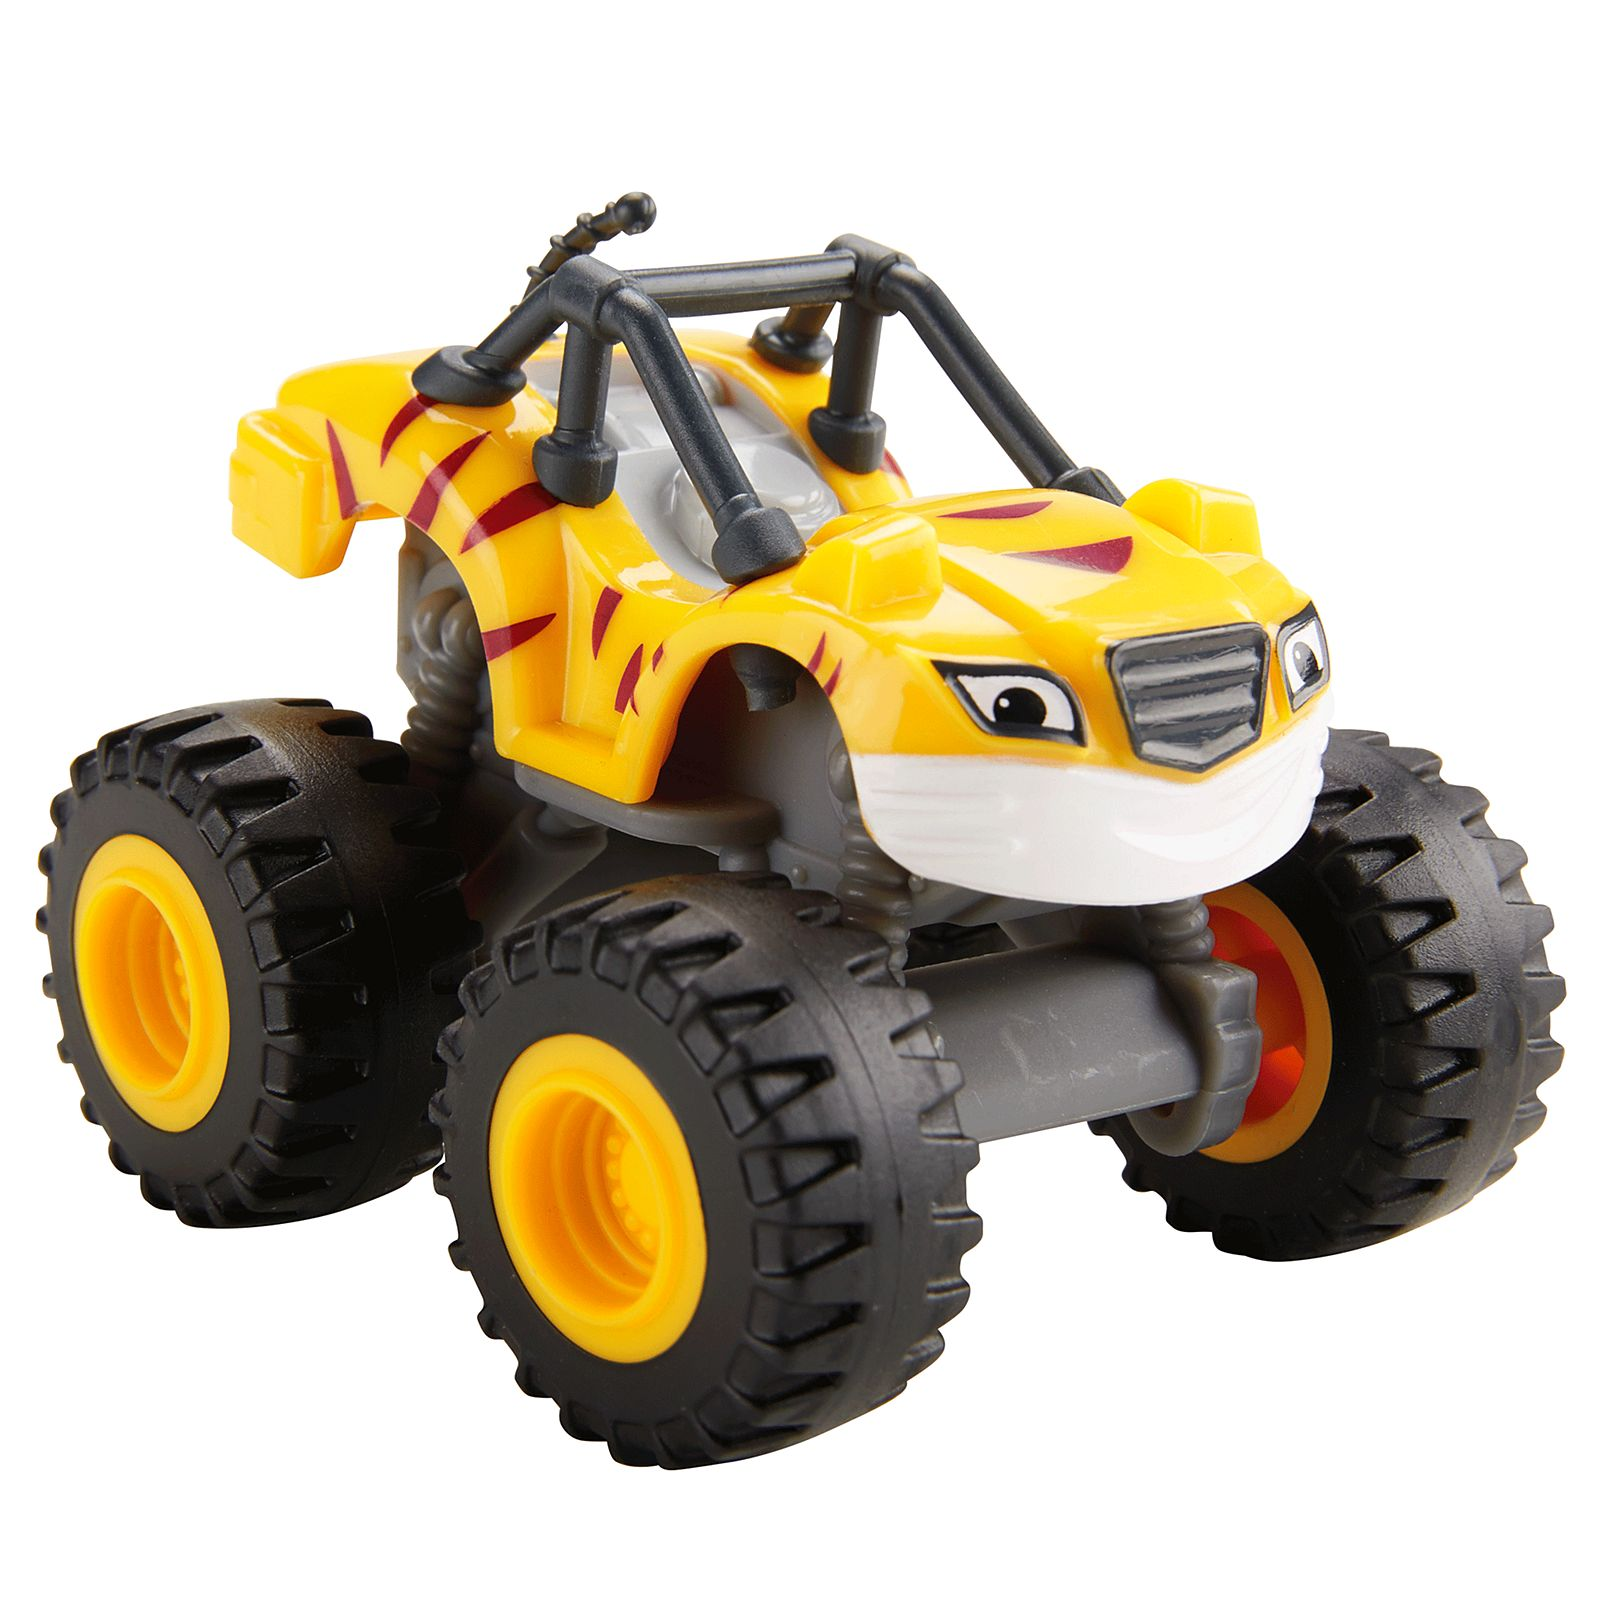 Fisher Price Nickelodeon Blaze And The Monster Machines Stripes